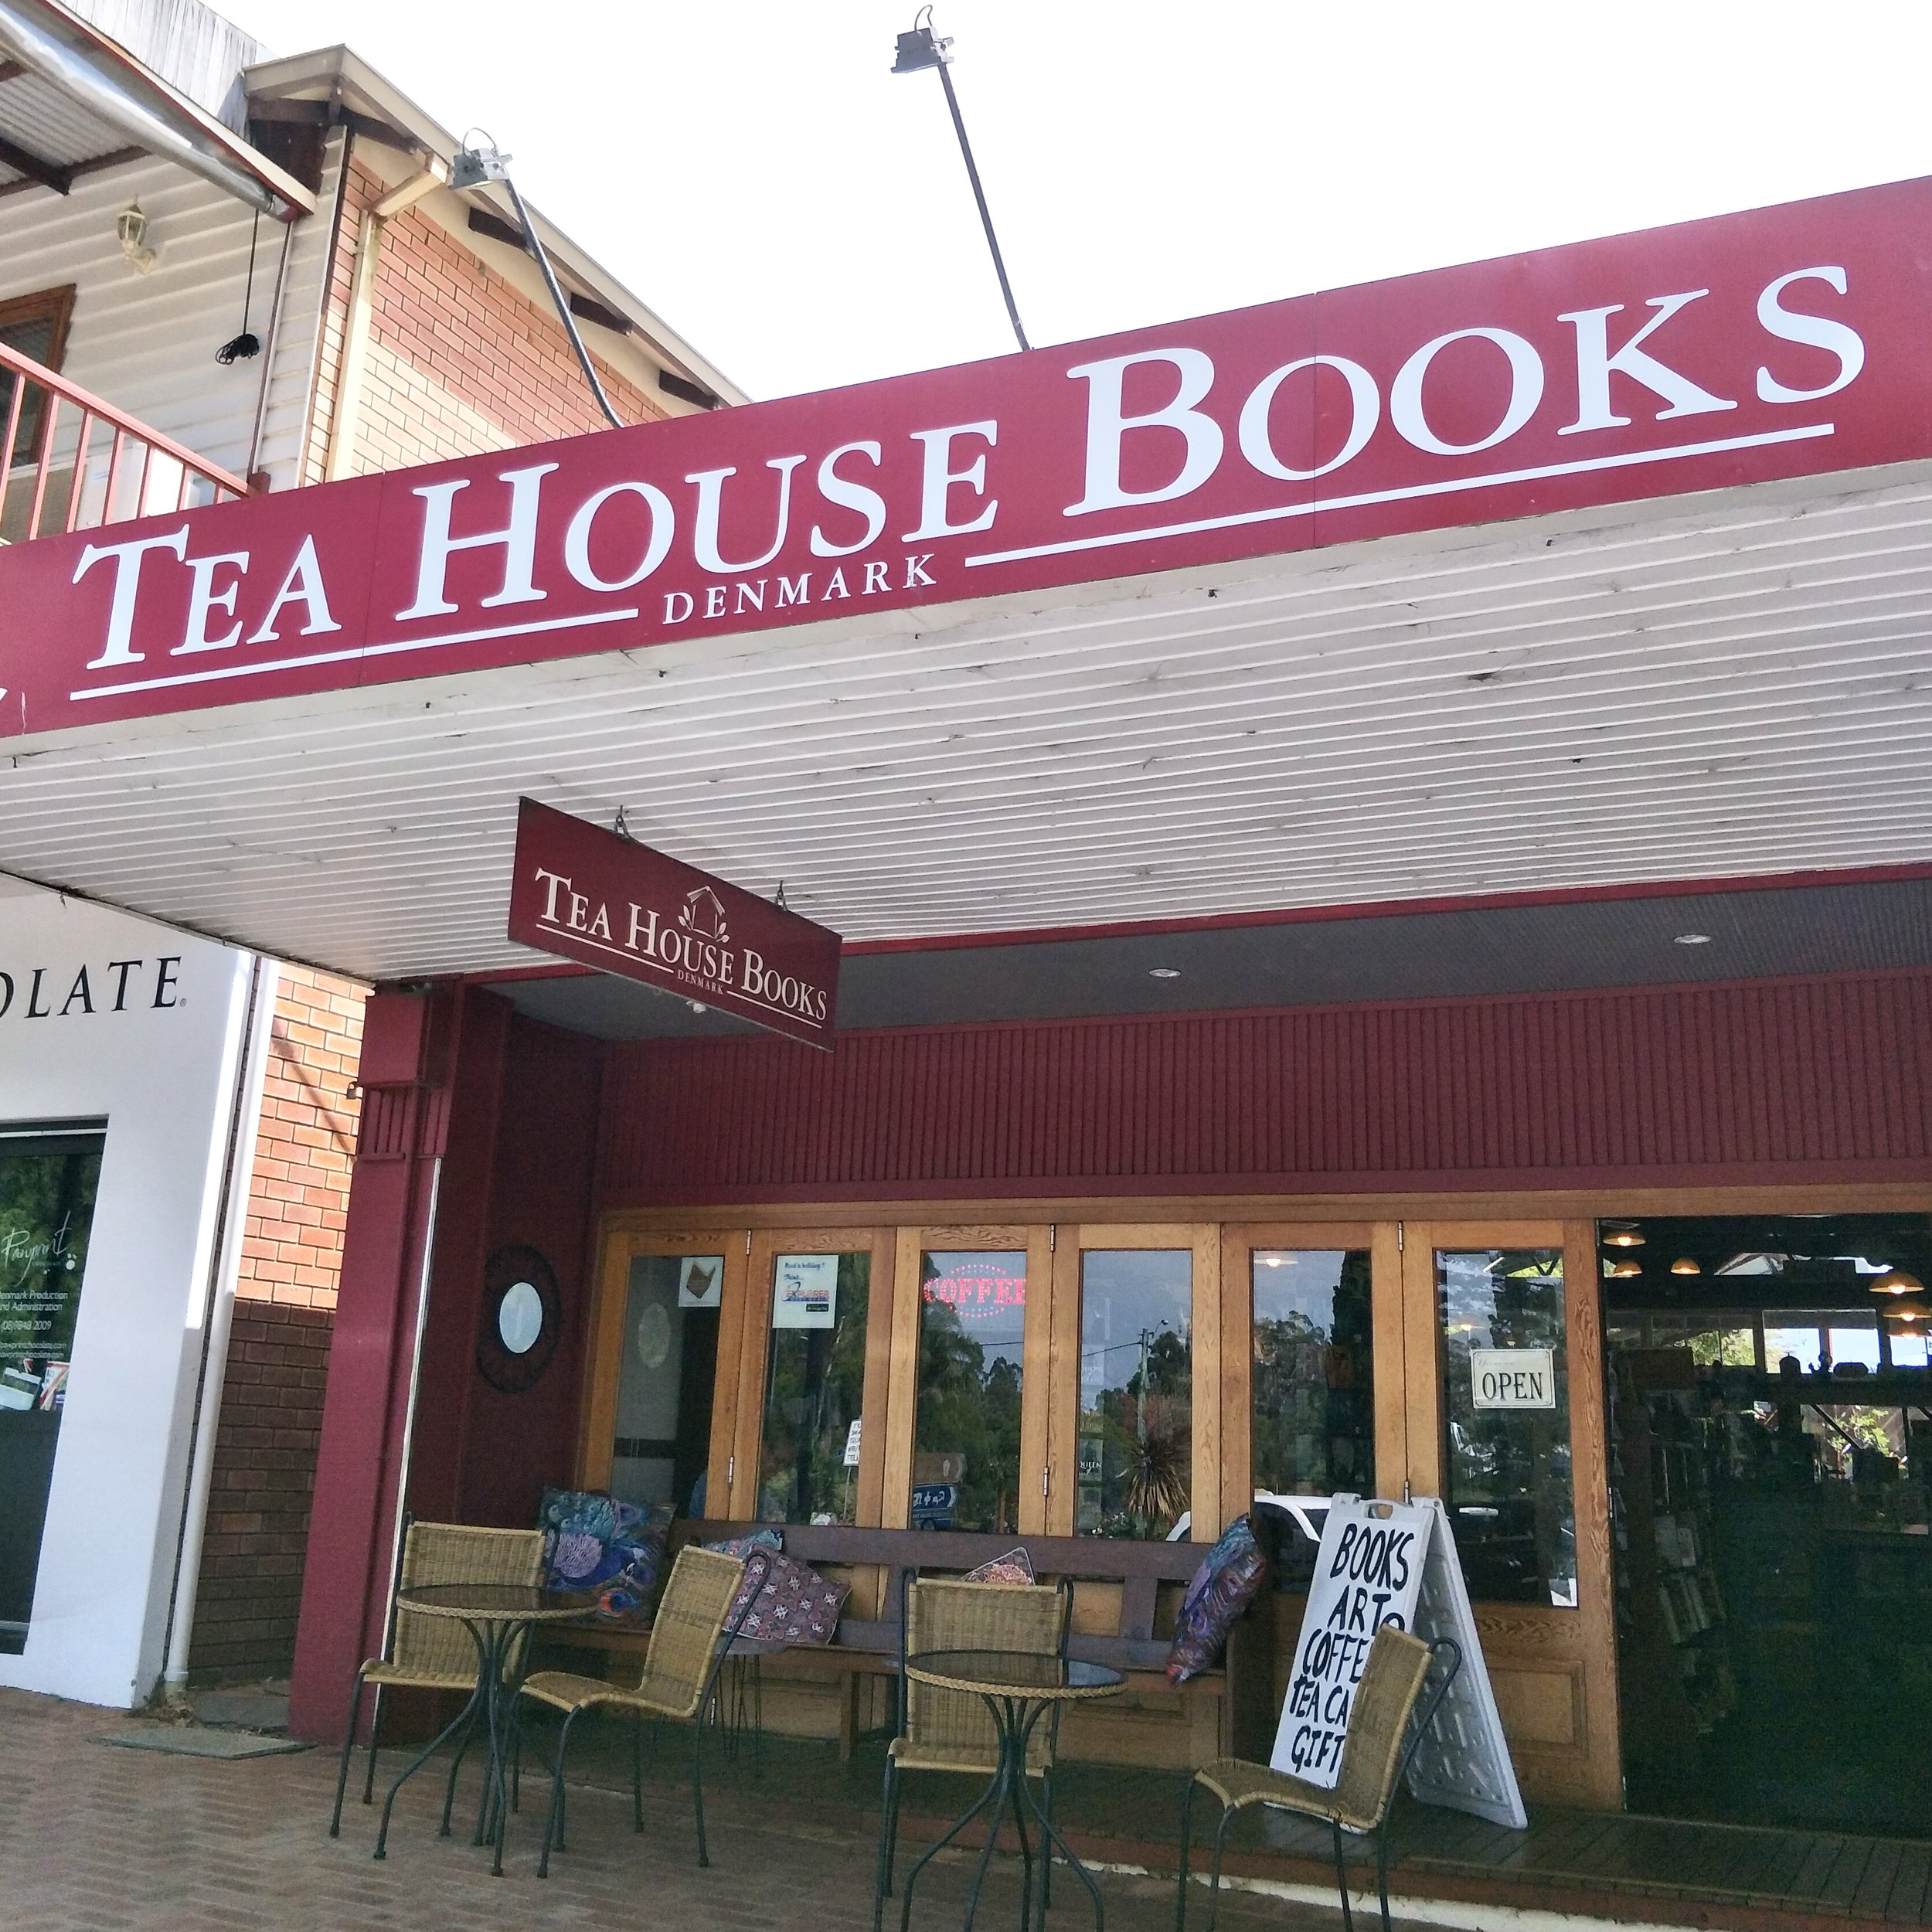 Tea House Books Denmark WA.jpg